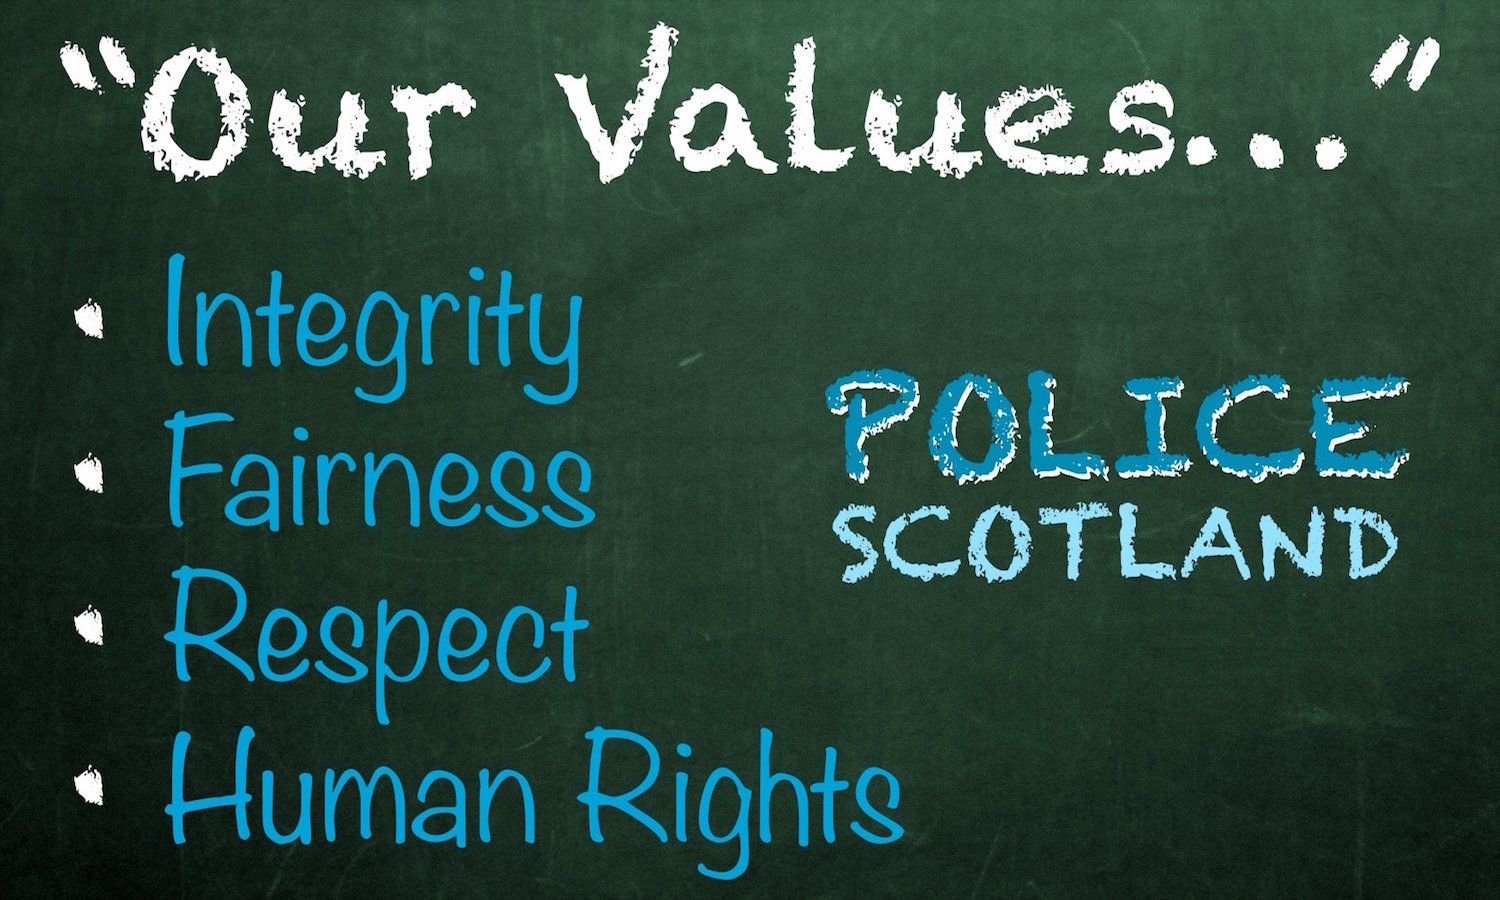 Police Scotland promotion values